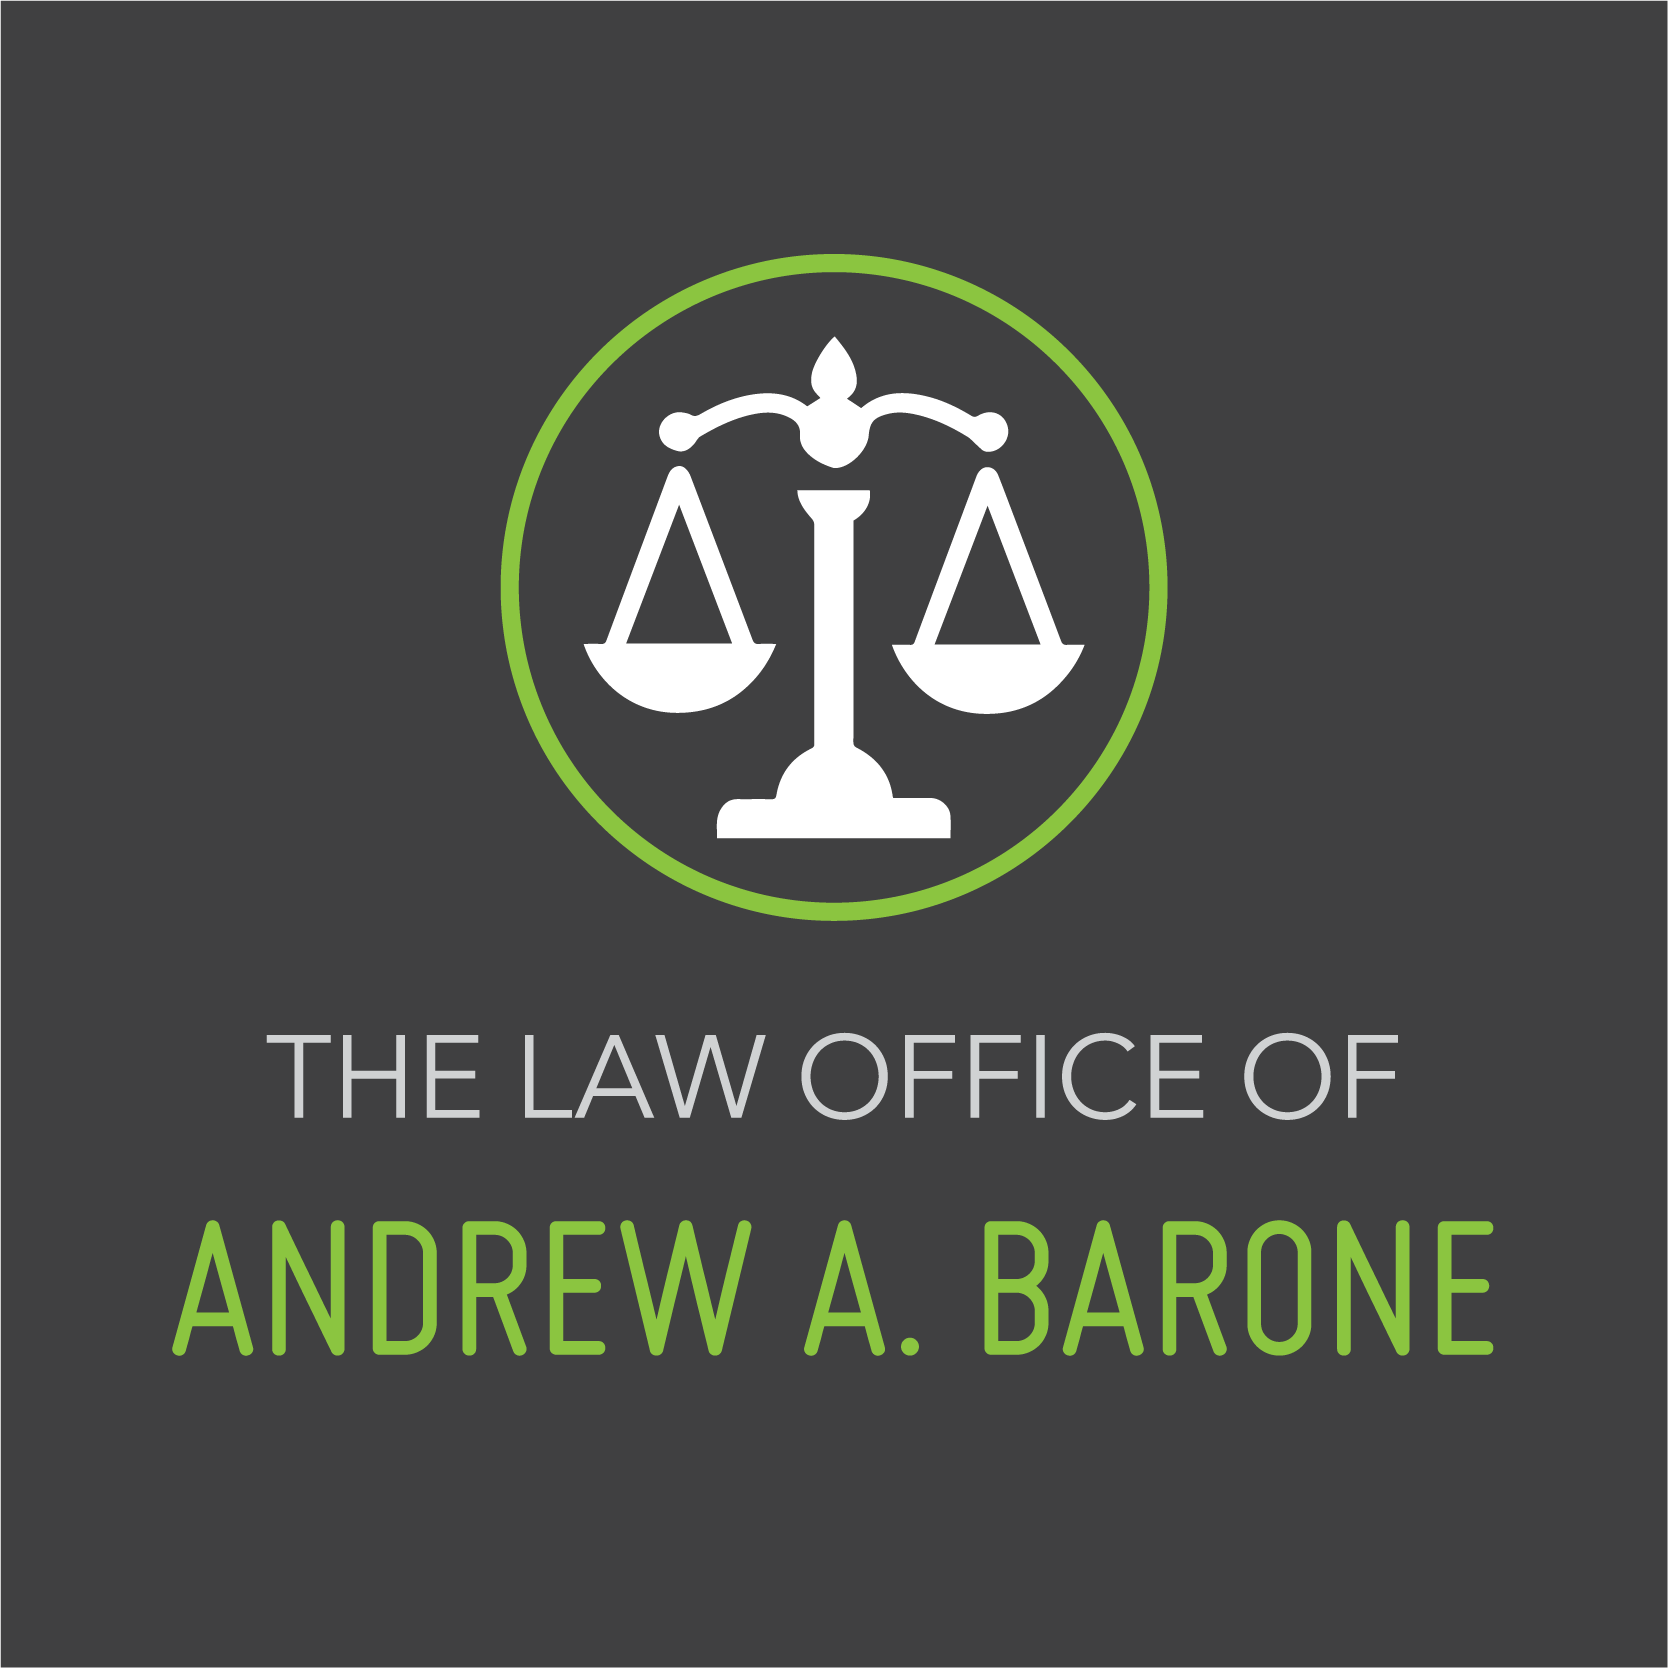 The Law Offices of Andrew A. Barone, LLC - North Riverside, IL 60546 - (708)888-4357 | ShowMeLocal.com